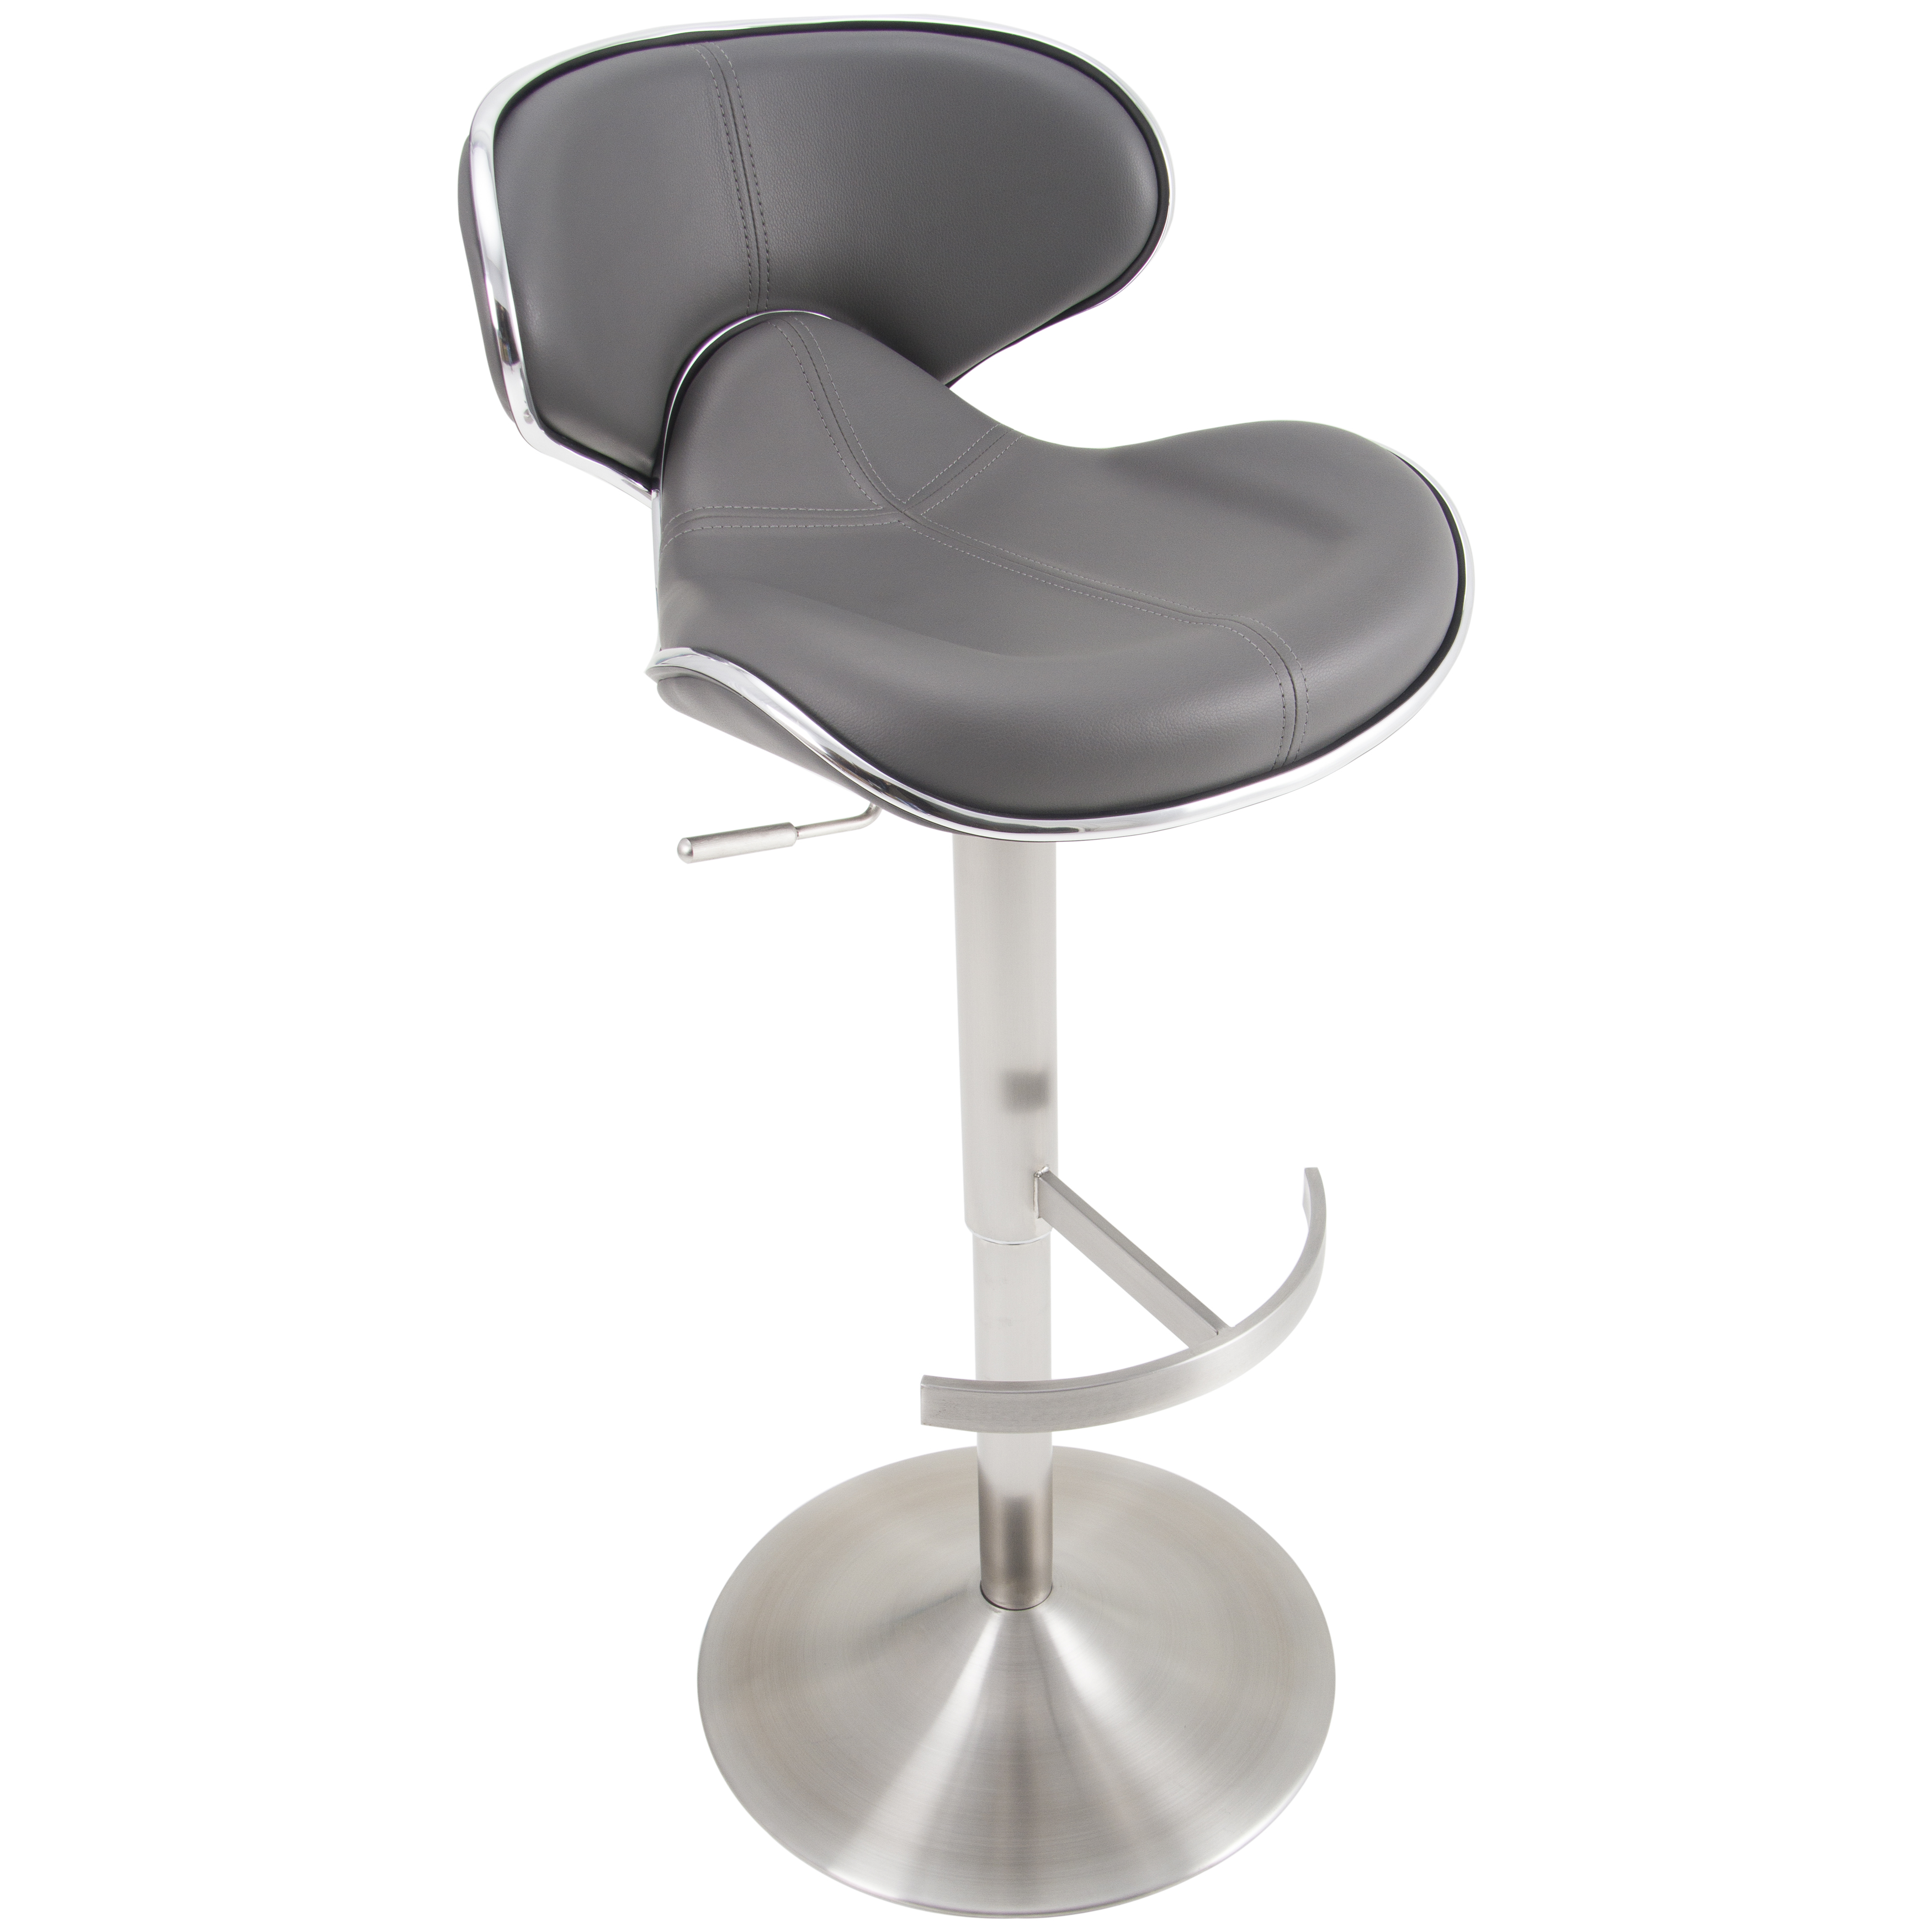 Ecco Brushed Stainless Steel Adjustable Height Swivel